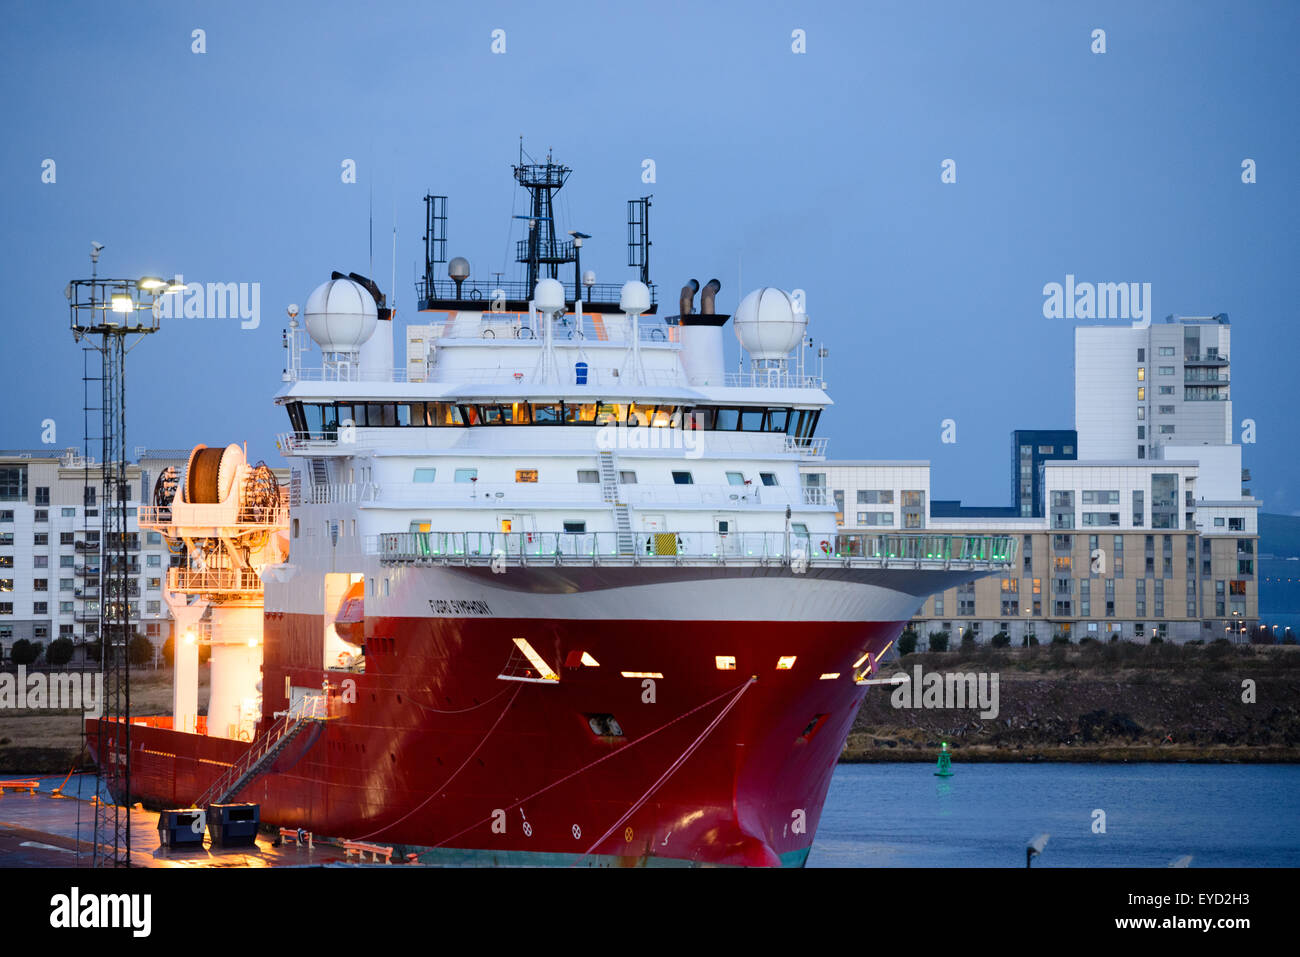 The Fugro Symphony one of Fugro Subsea Services vessels, a purpose built ROV - remotely operated underwater vehicle - Stock Image